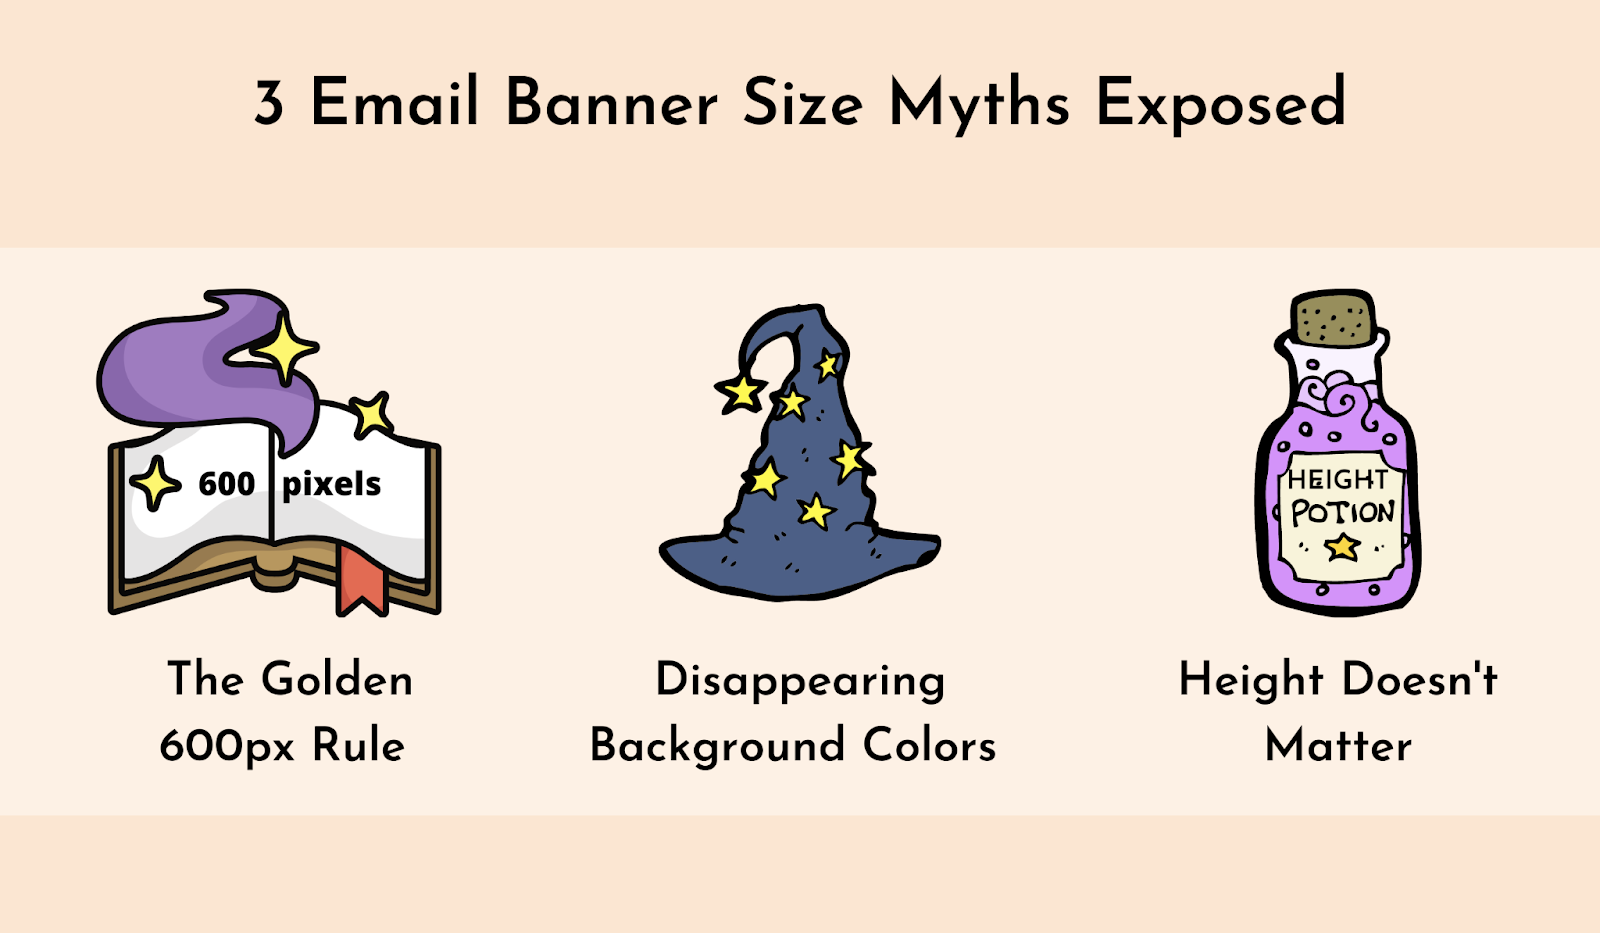 3 Myths of Email Banner Size